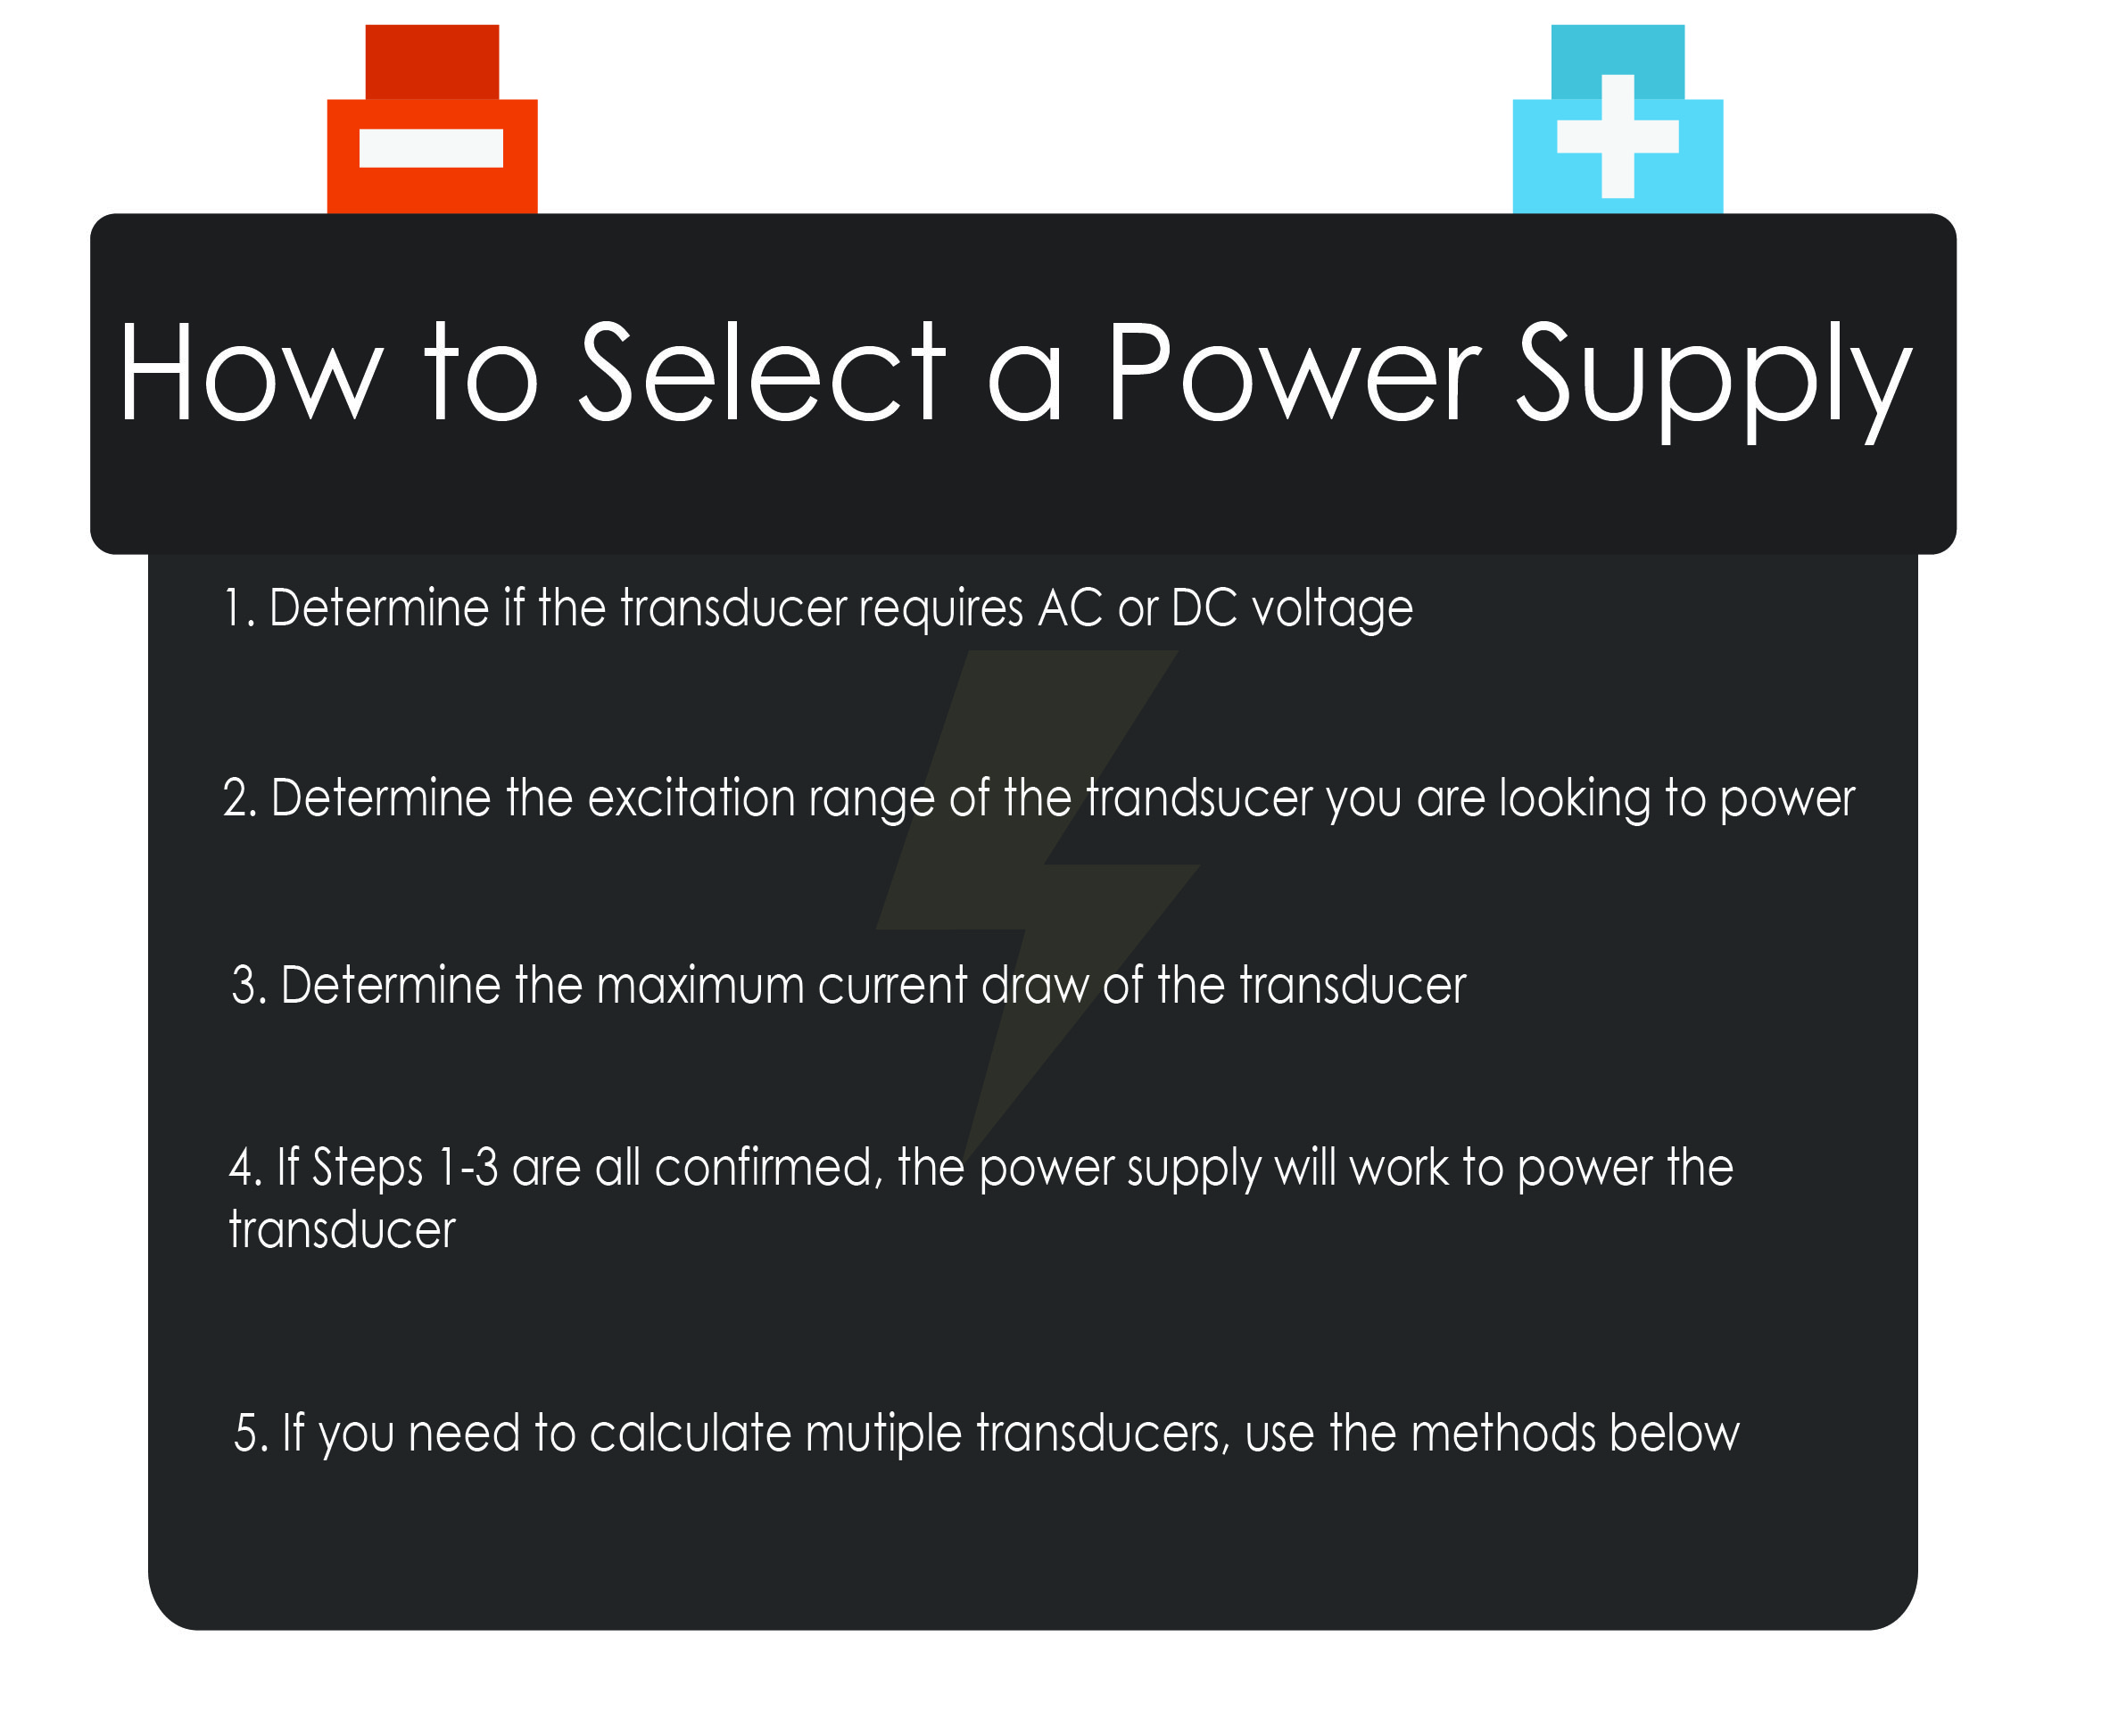 power_supply-01-1.jpg